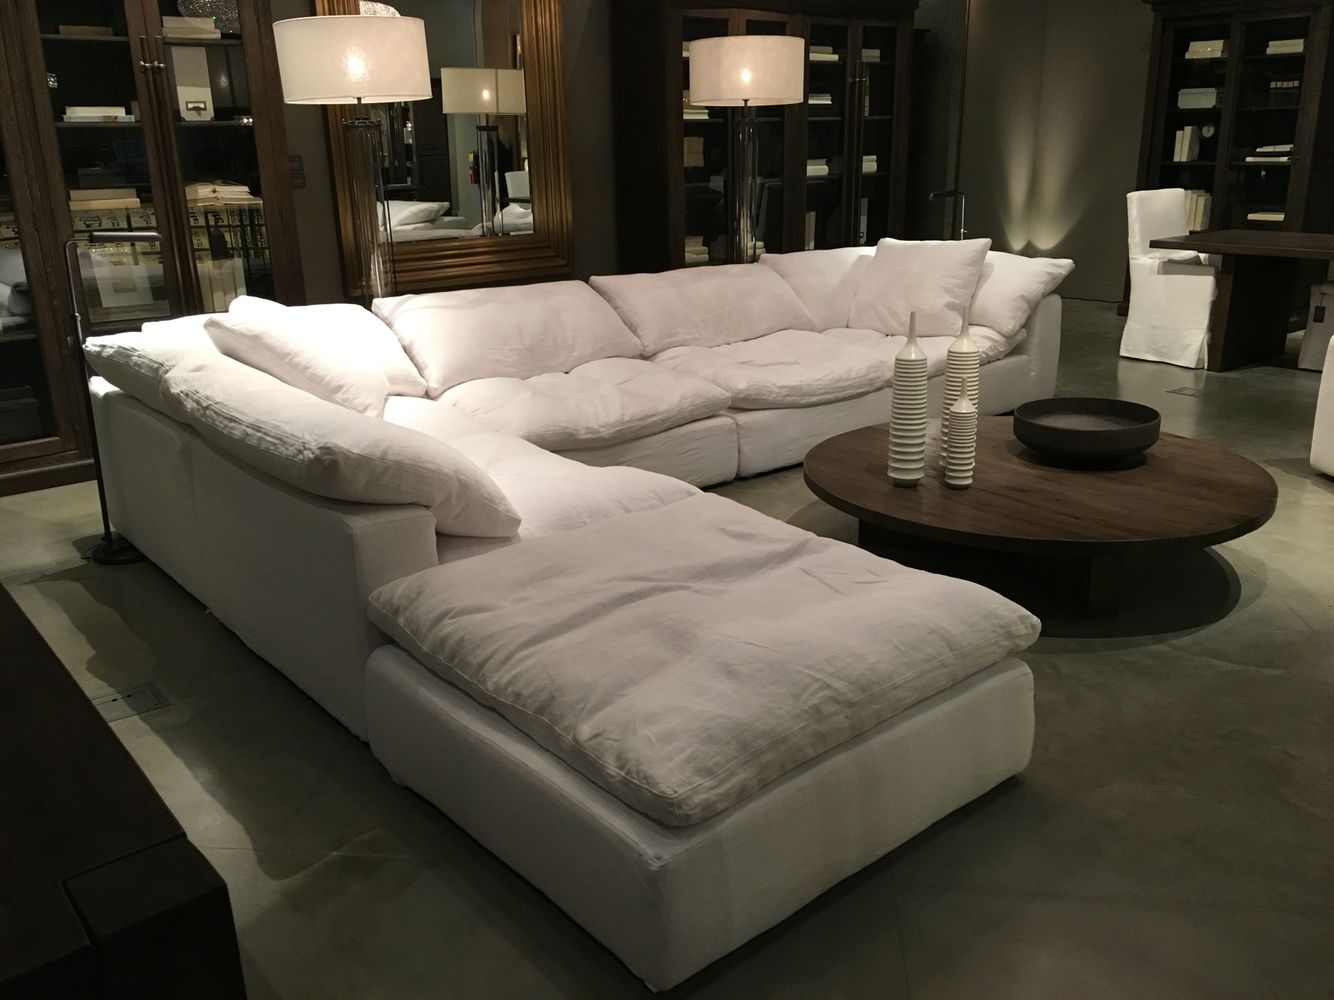 Restoration hardware sectional cloud couch future for Comfy sofas for sale